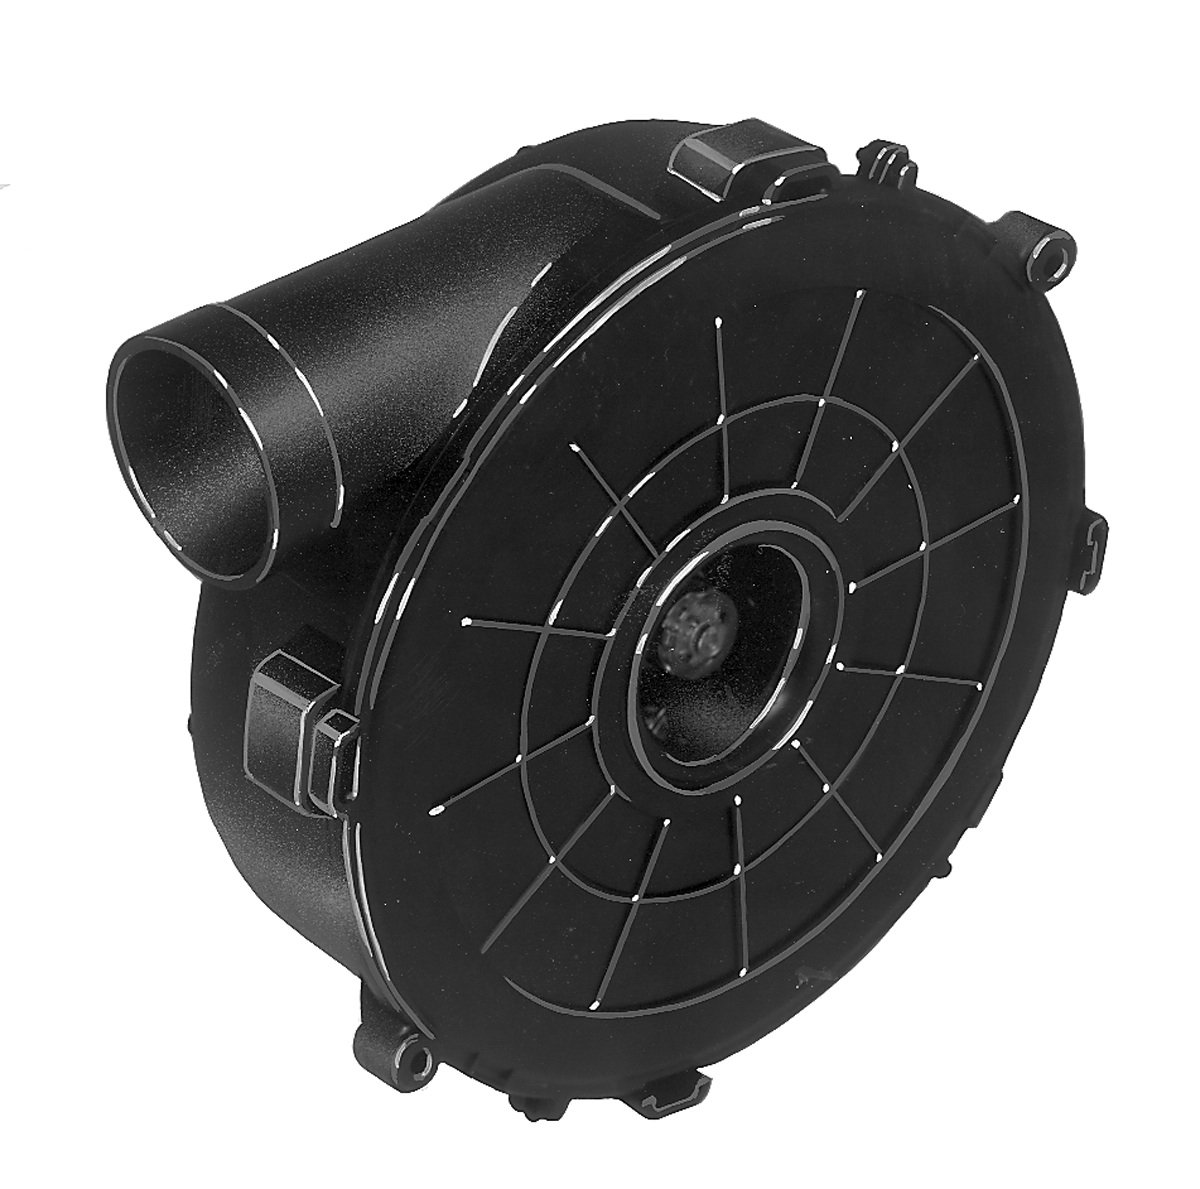 Fasco A163 3.3'' Frame Shaded Pole OEM Replacement Specific Purpose Blower with Ball Bearing, 1/20HP, 3,400 rpm, 115V, 60 Hz, 1.8 amps